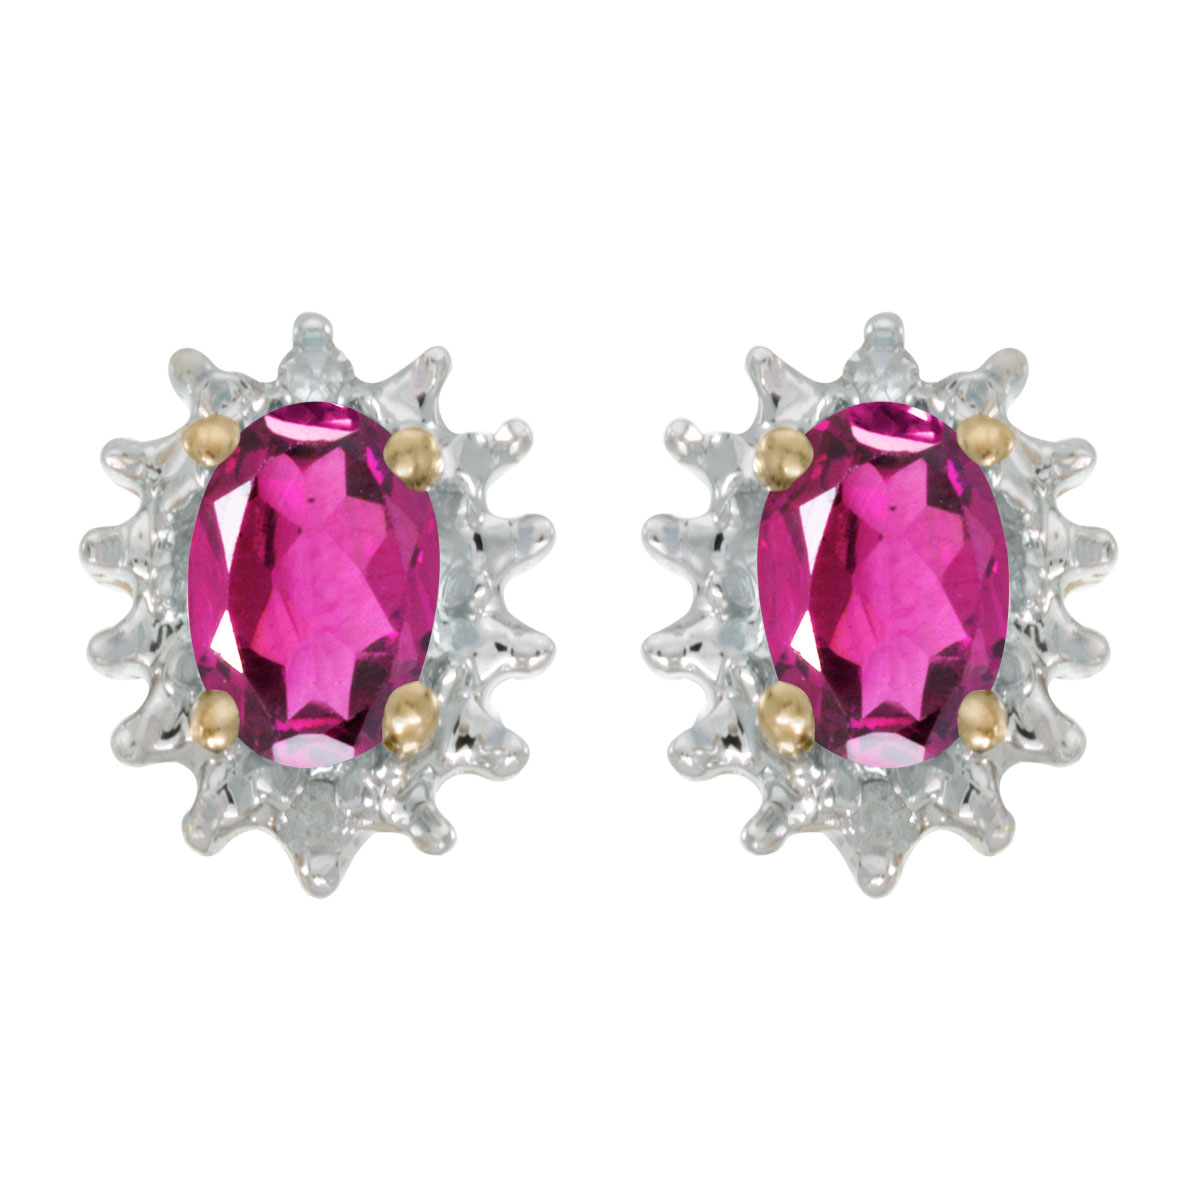 14k Yellow Gold Oval Pink Topaz And Diamond Earrings by